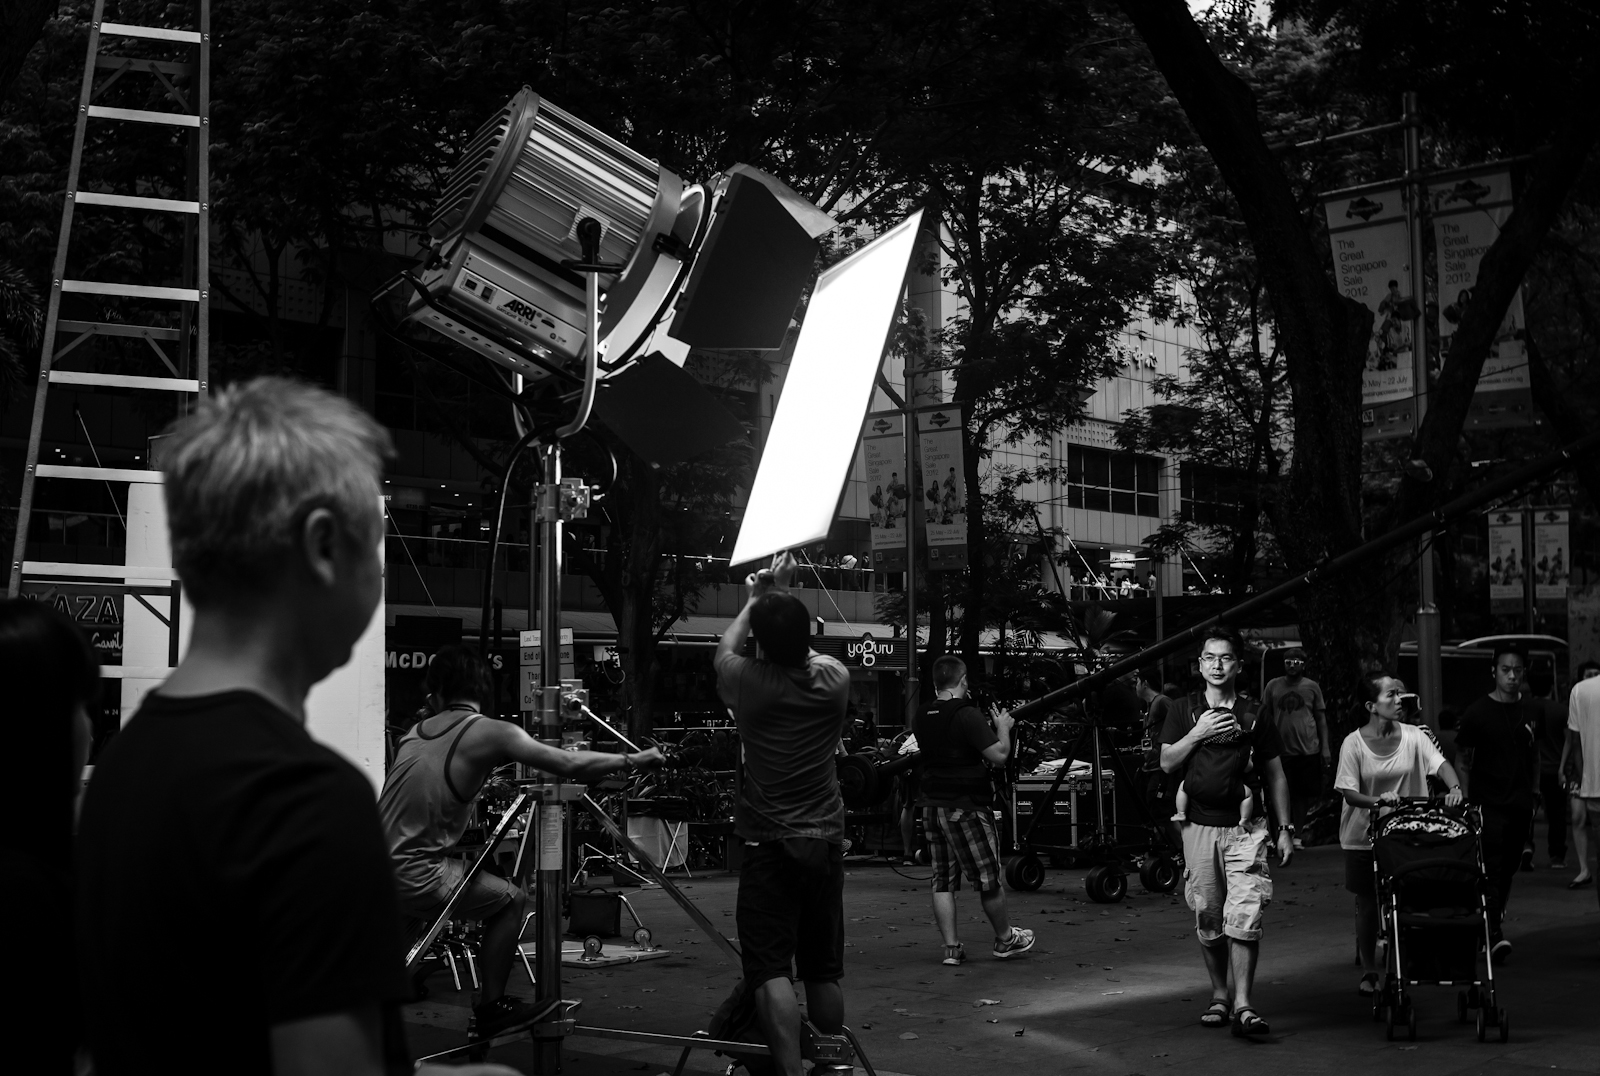 Crew setting up lighting for a fashion runway along Orchard Road